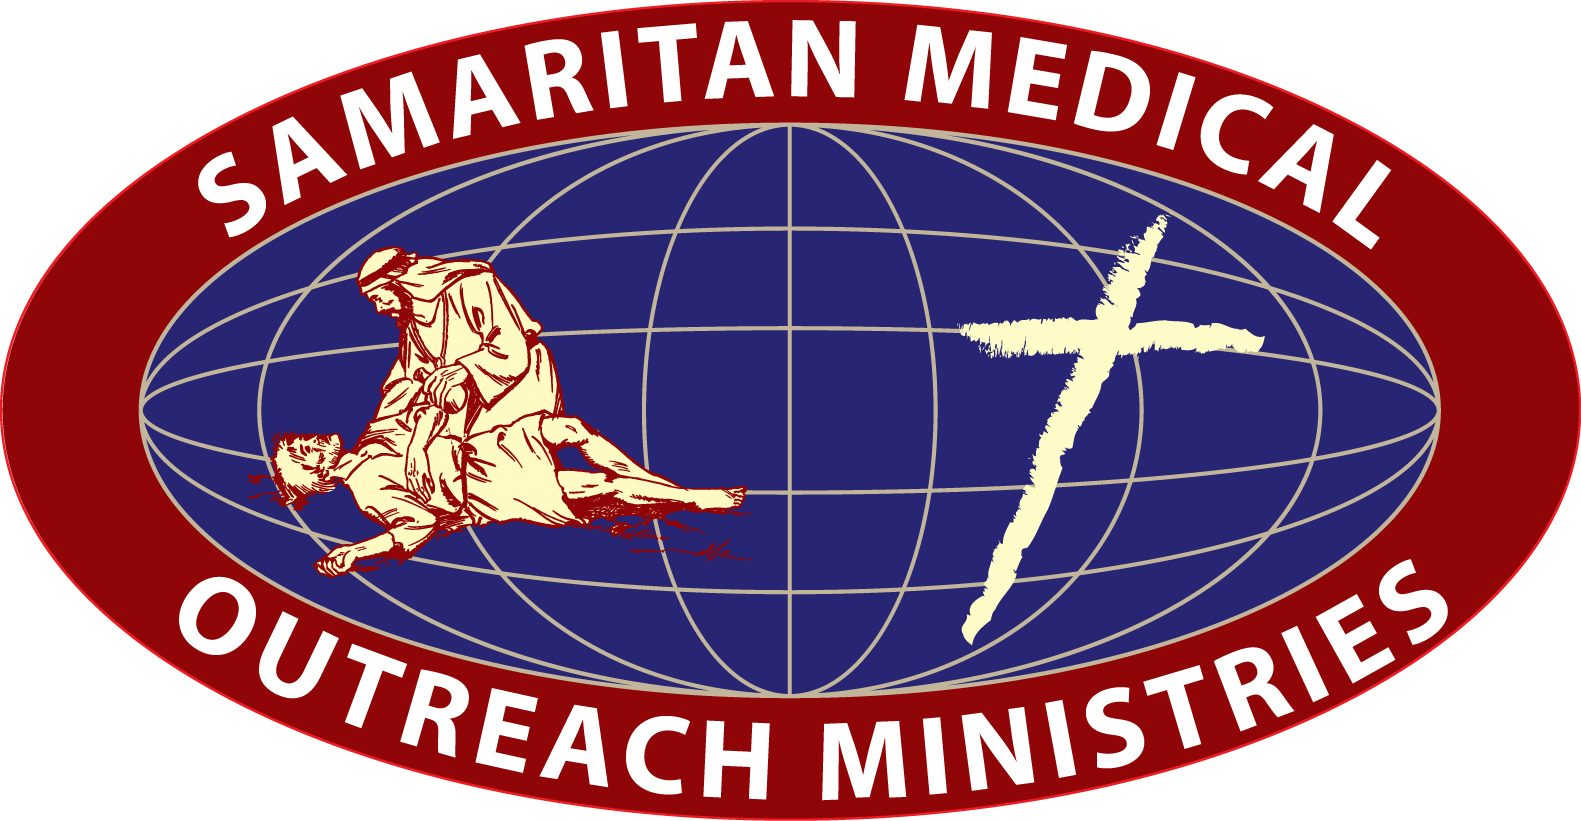 Samaritan Medical Outreach Ministries